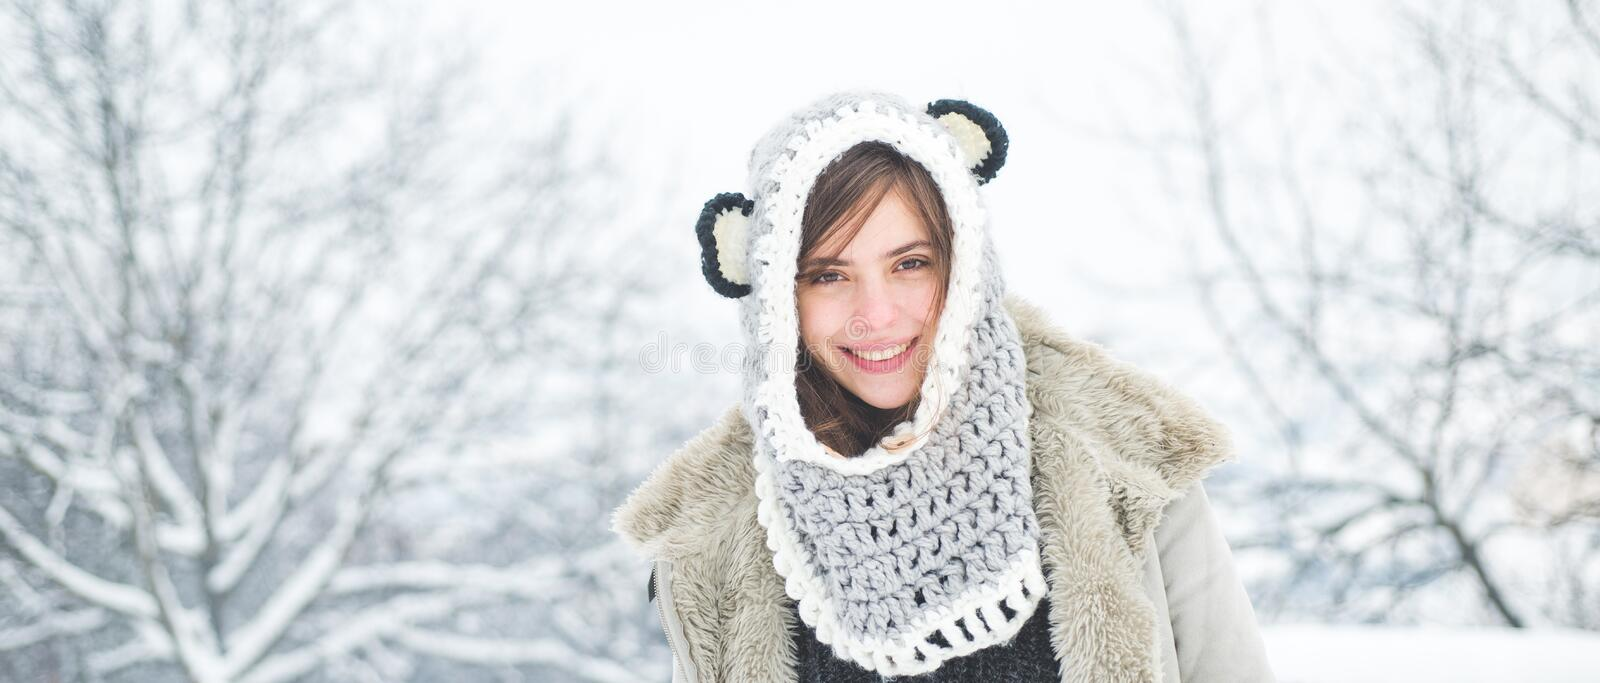 Happy girl winter portrait. Winter woman. Portrait of a young woman in snow. Beauty Winter Girl in frosty winter Park. stock images